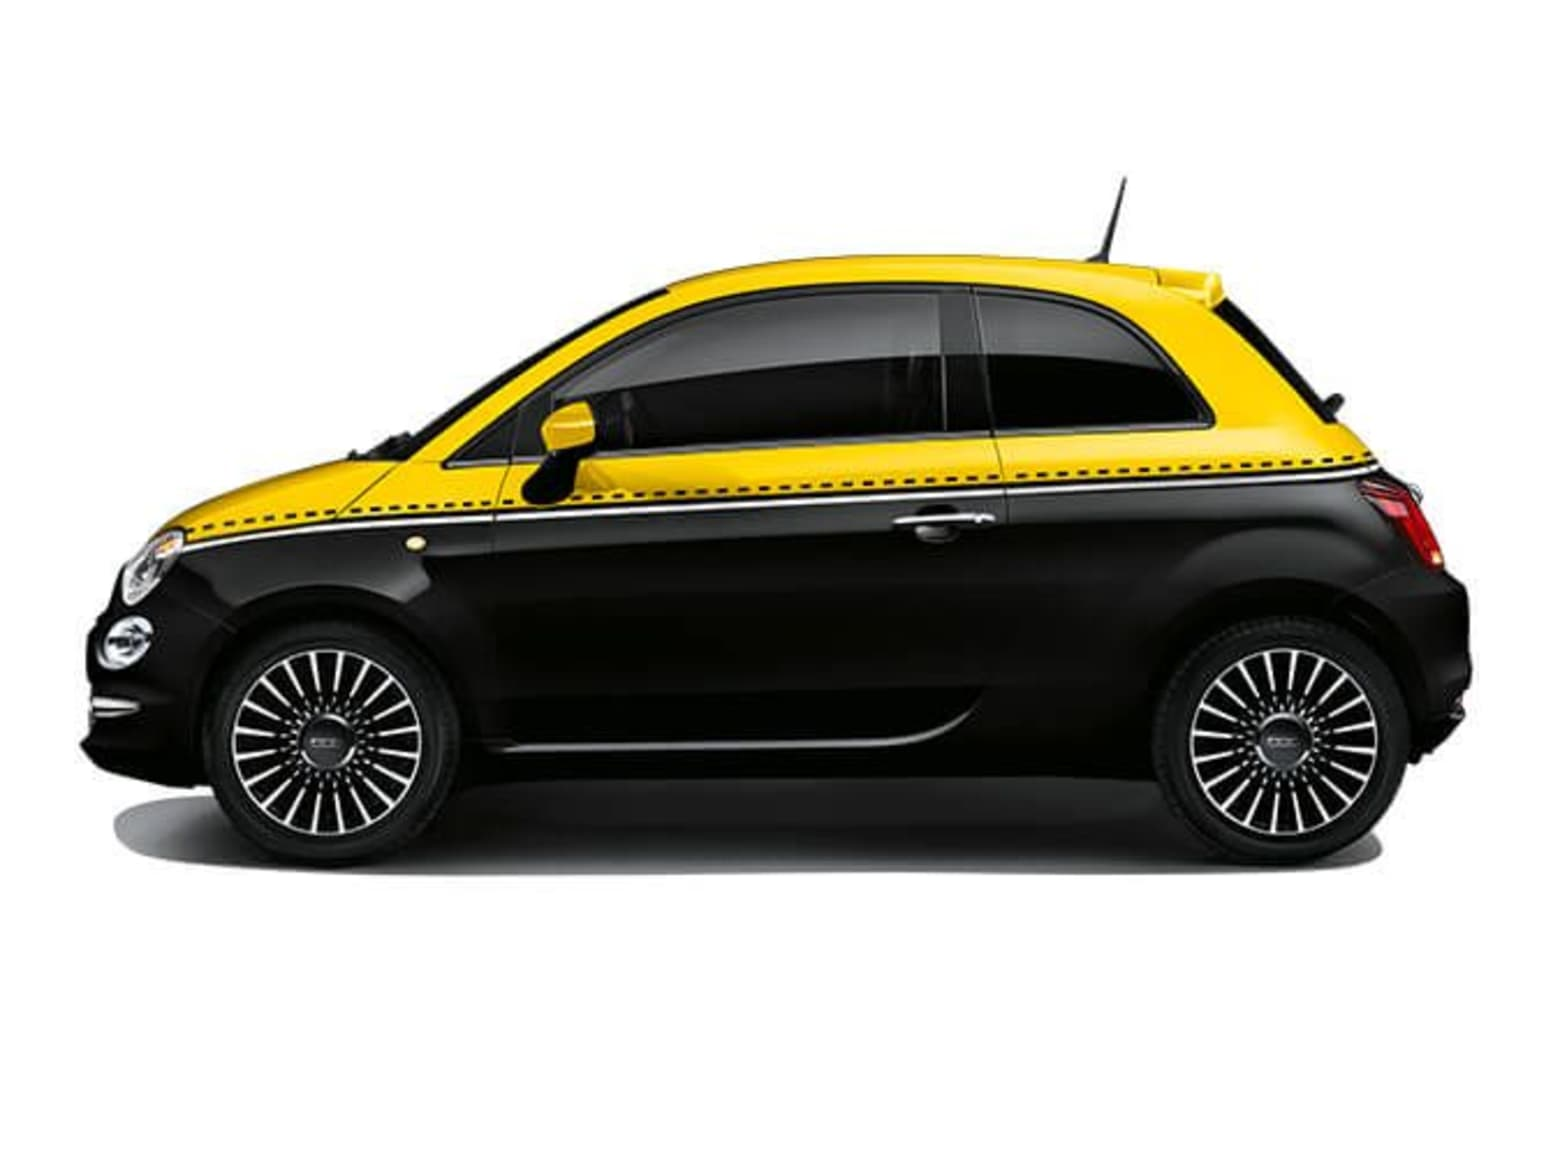 Yellow and Black Fiat 500 Side Exterior